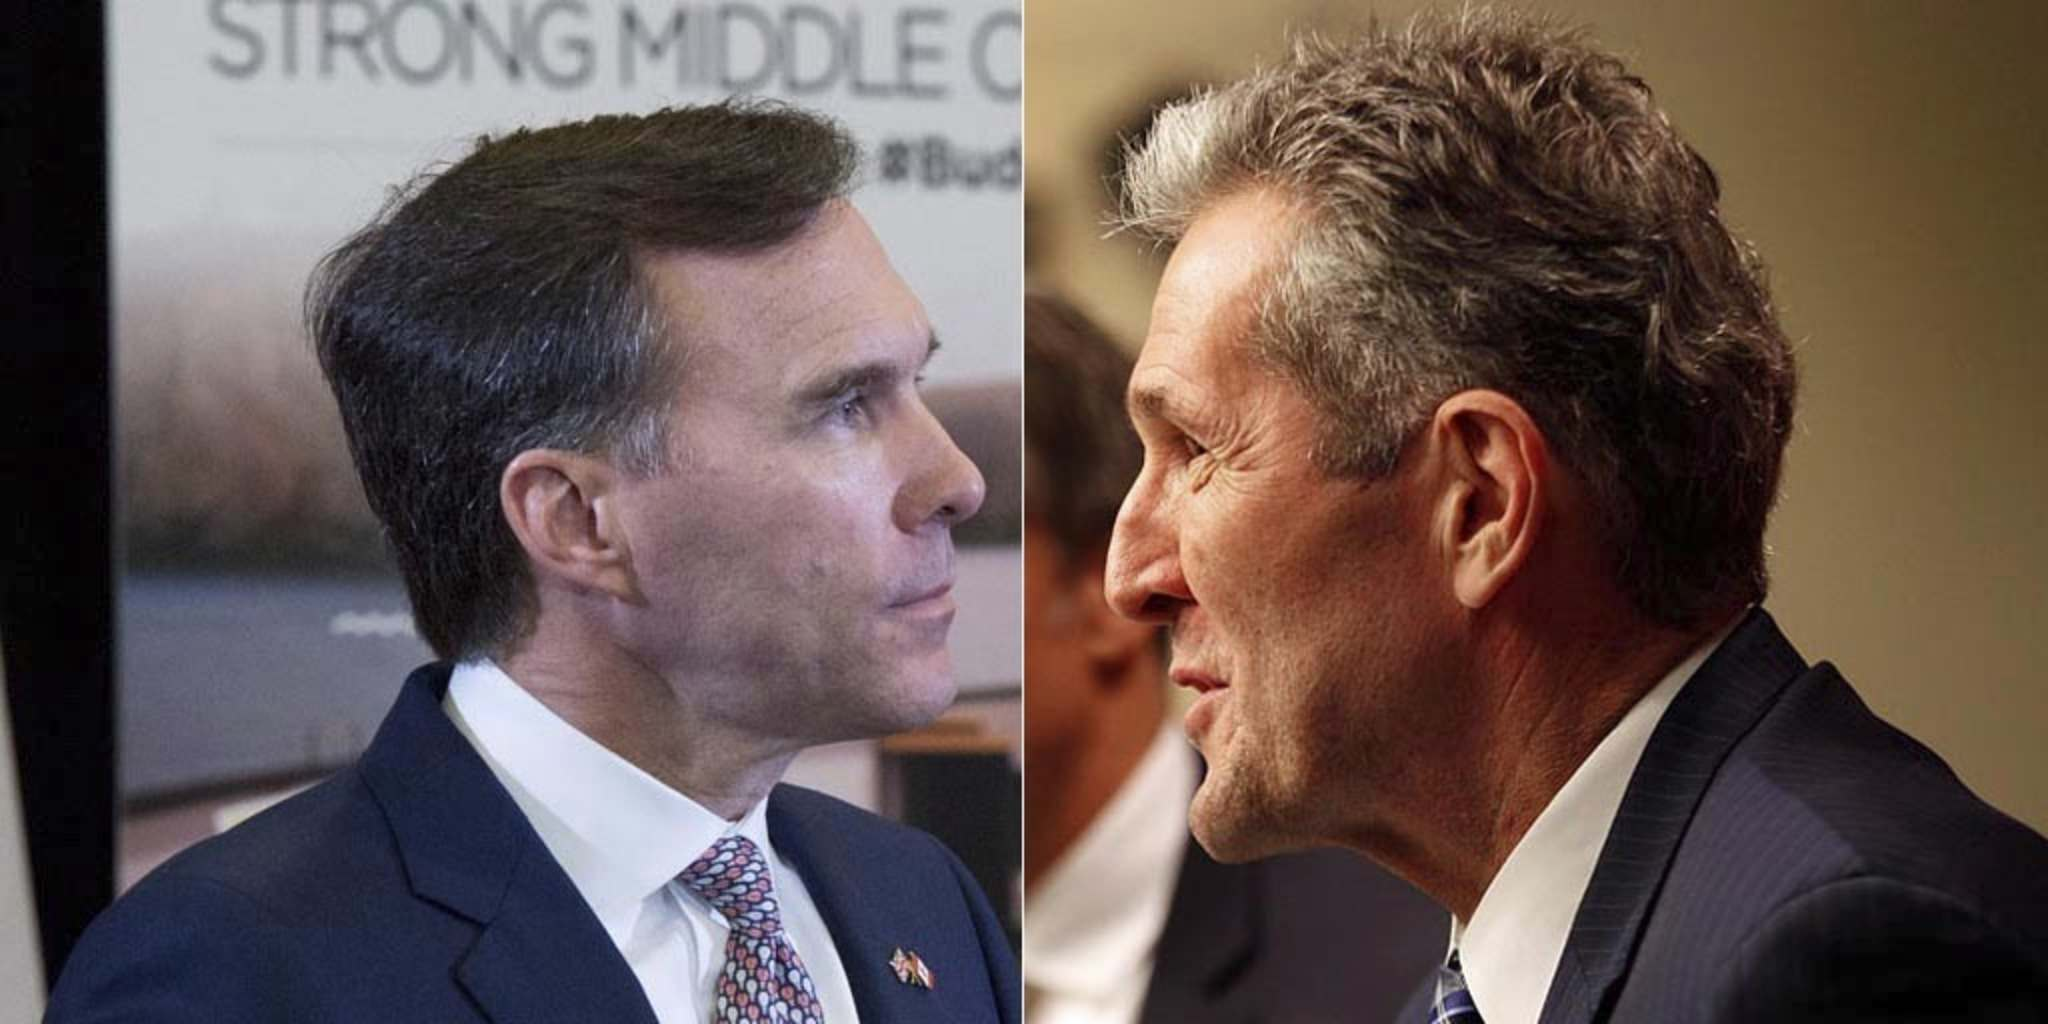 JUSTIN TANG / THE CANADIAN PRESS AND PHIL HOSSACK / WINNIPEG FREE PRESS</p><p>Federal Finance Minister Bill Morneau and Premier Brian Pallister appear to have a frosty relationship.</p>